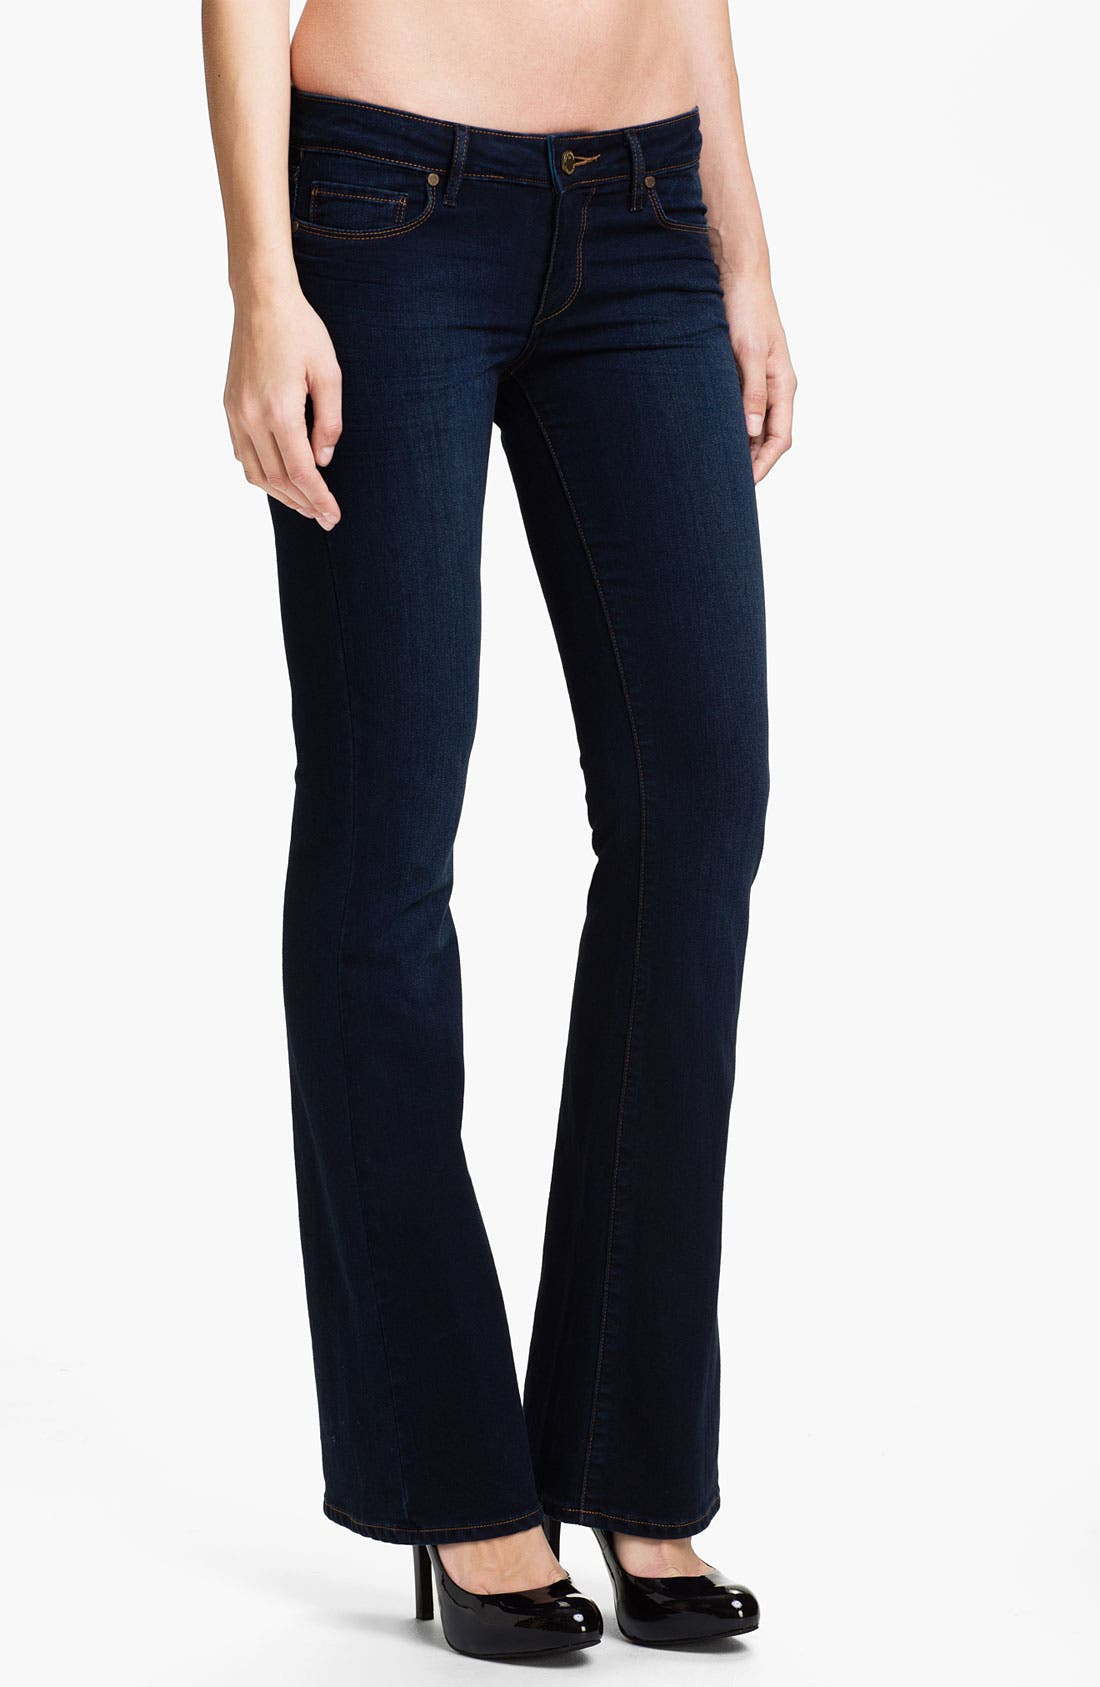 Alternate Image 1 Selected - Paige Denim 'Skyline' Bootcut Jeans (Lynx)